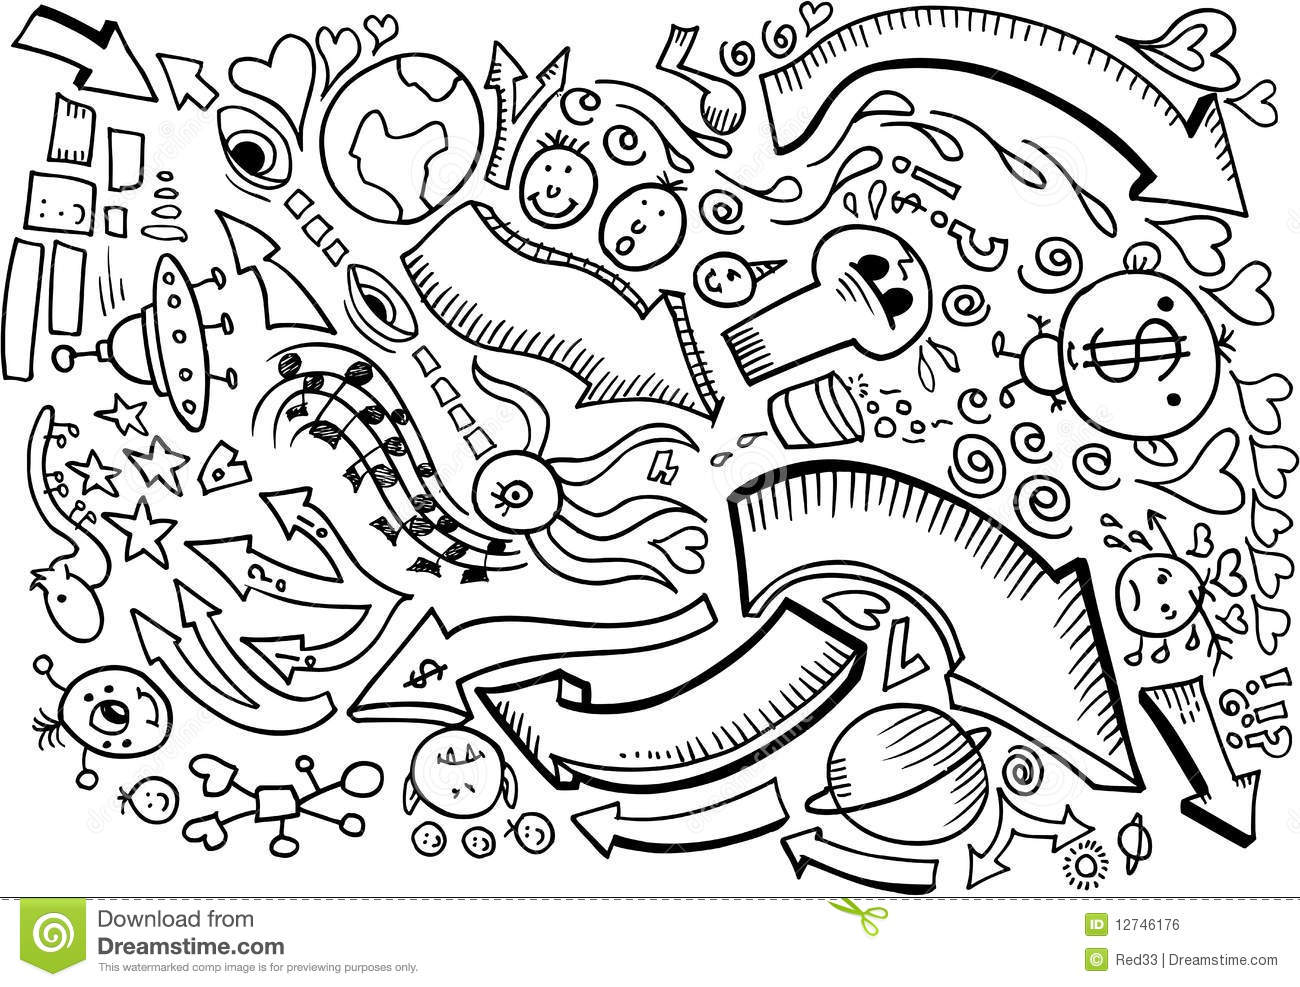 Doodle sketch drawing vector royalty free stock image for Doodle art free